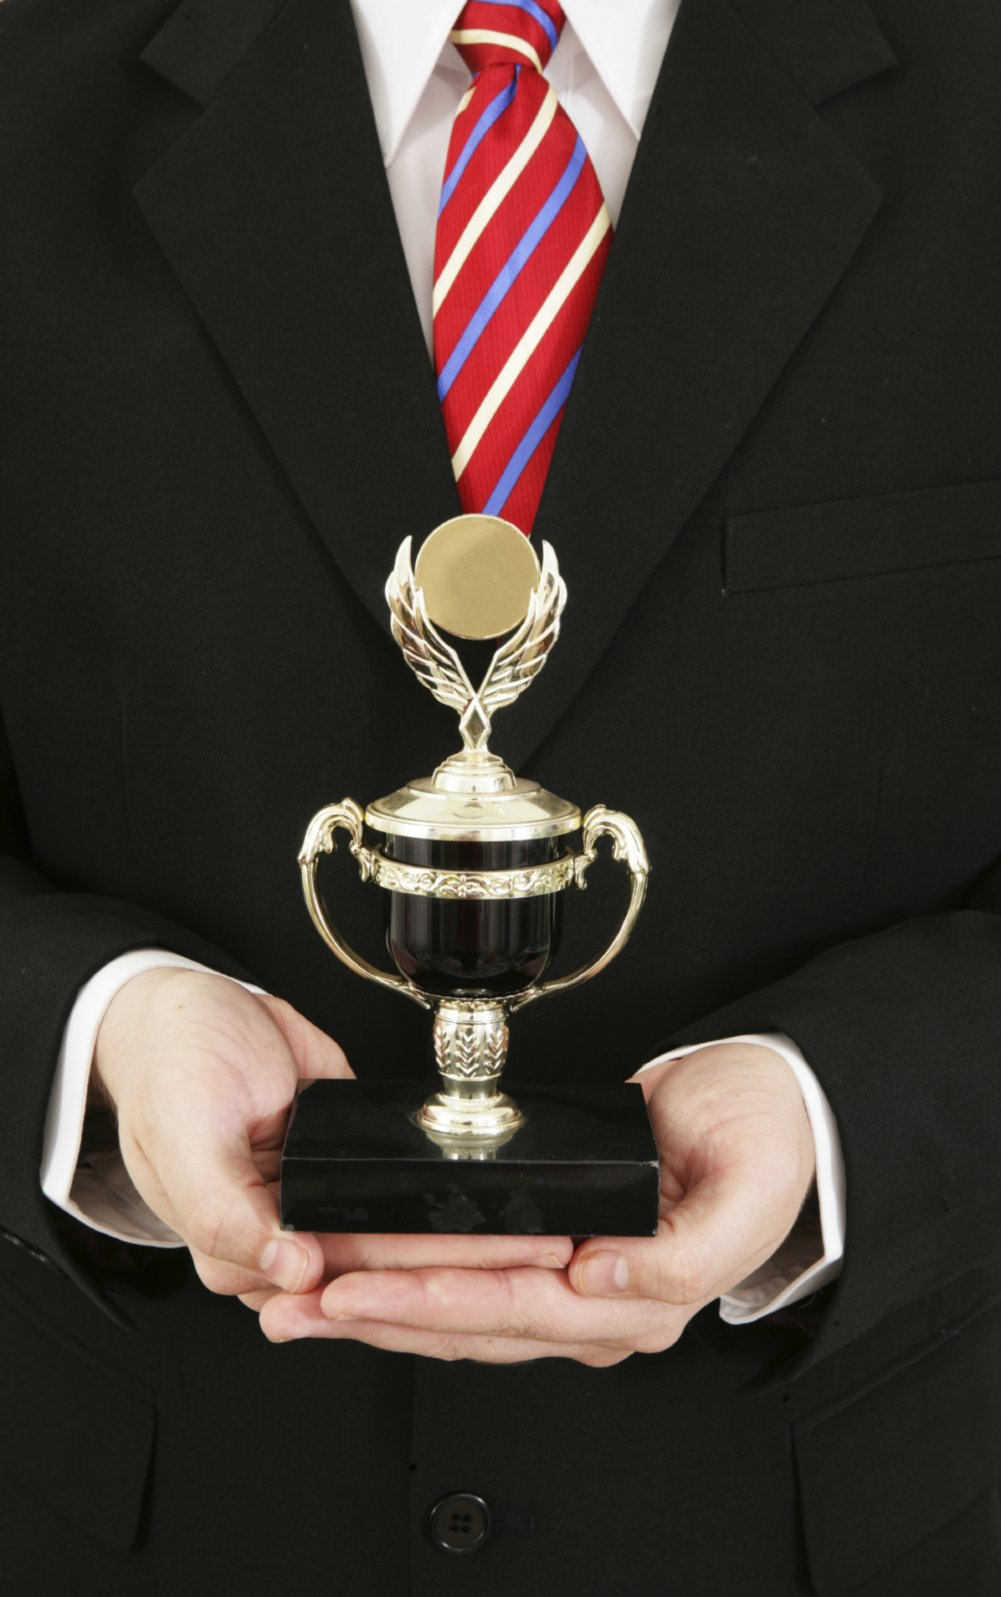 Shop Trophies for your Award Presentation